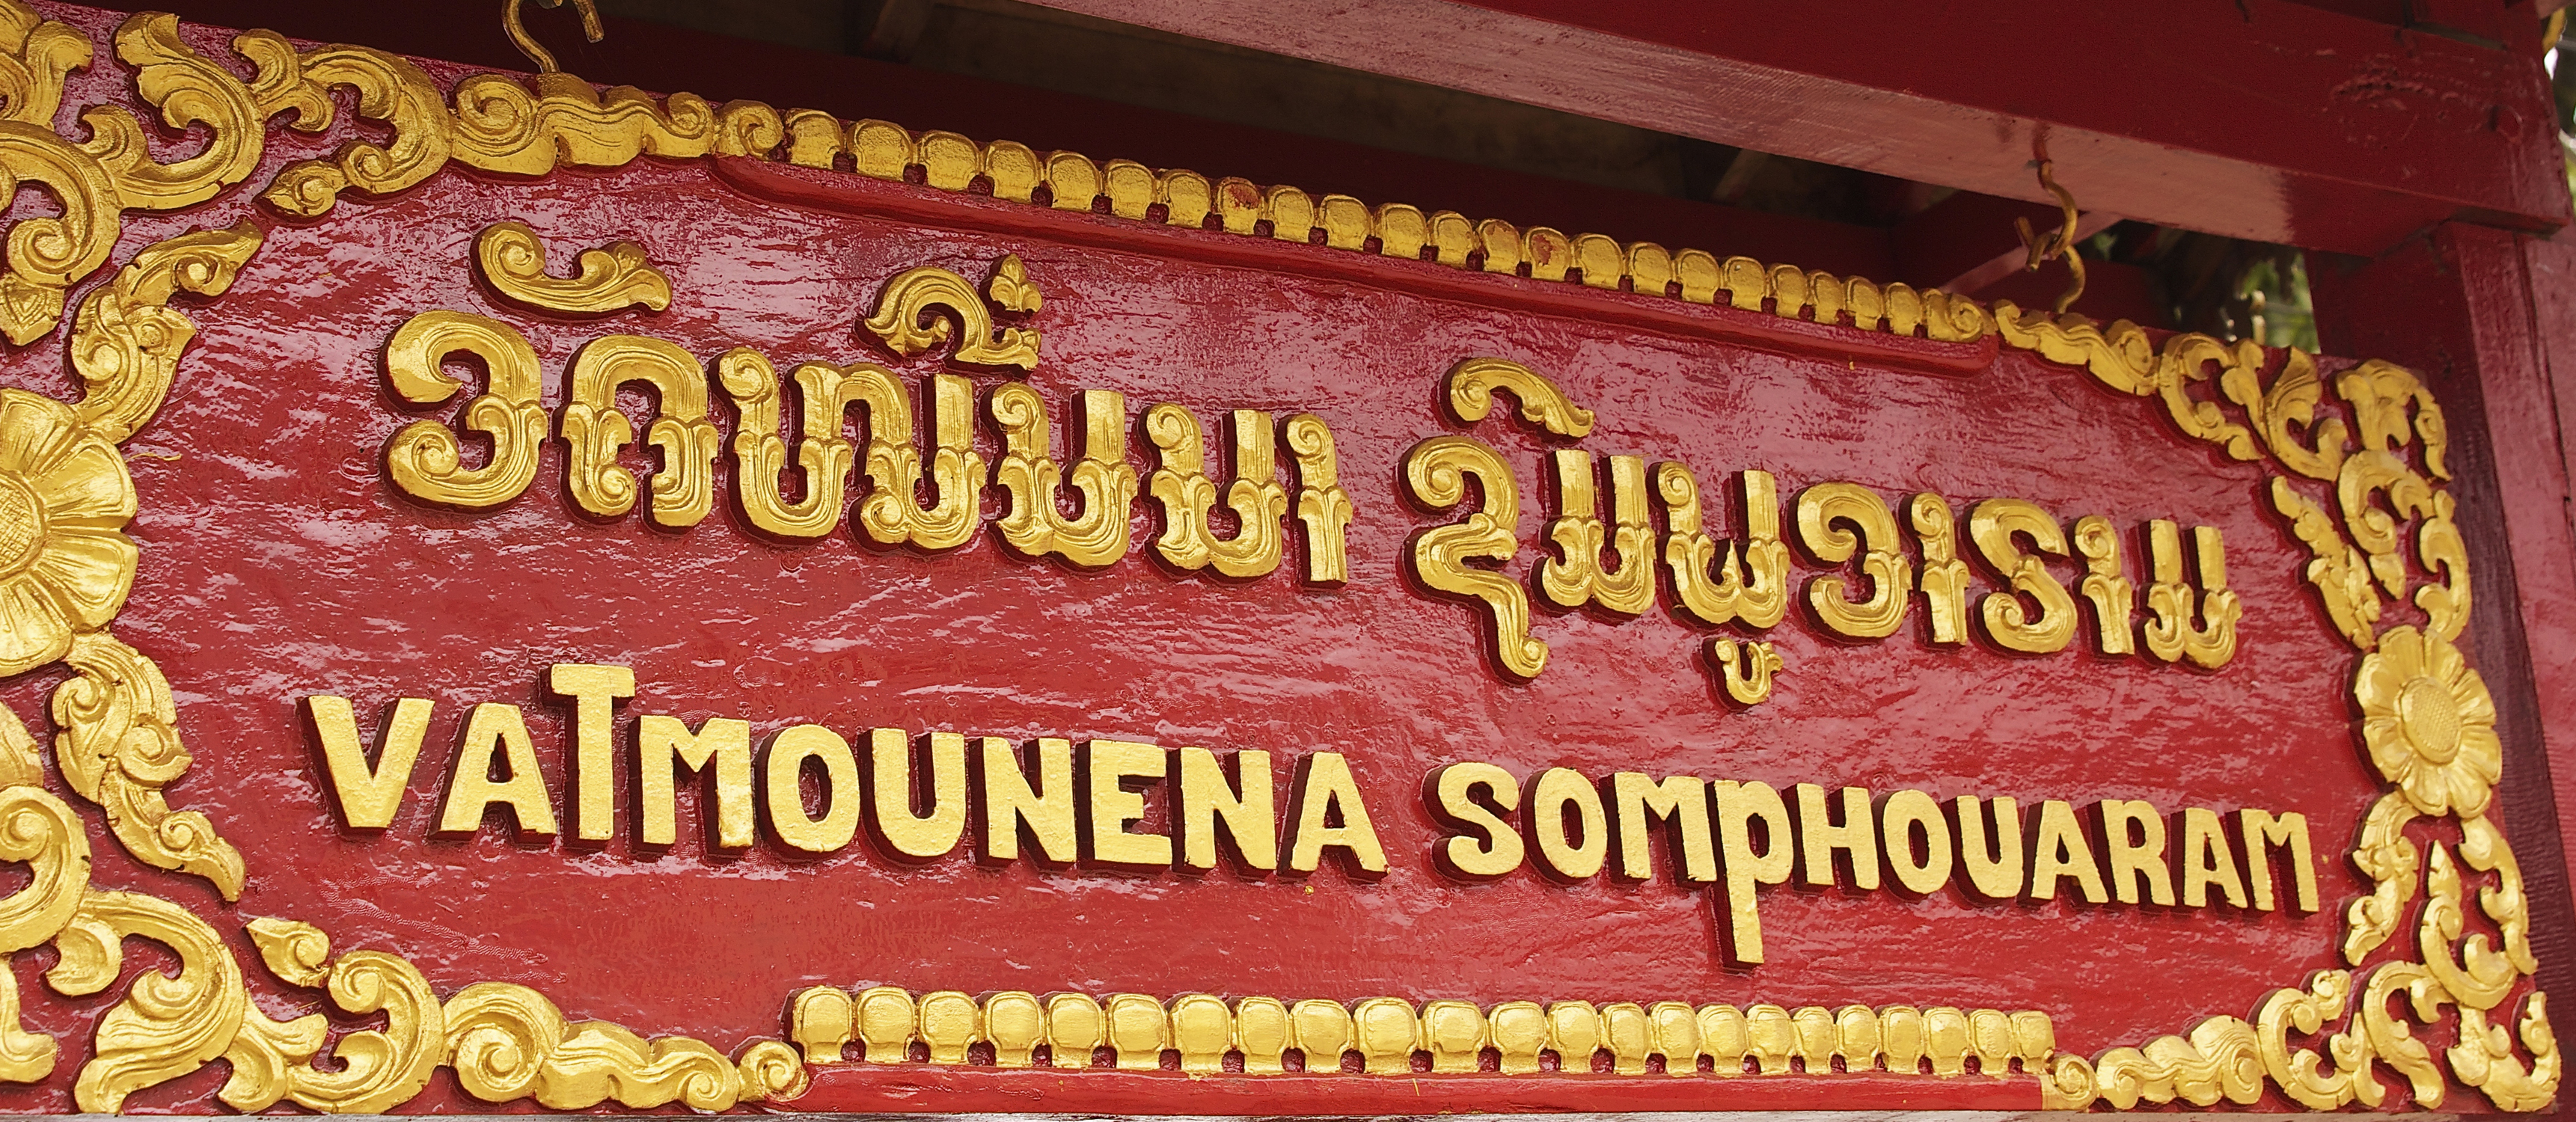 Vat Mounena SomphouaramTemple sign